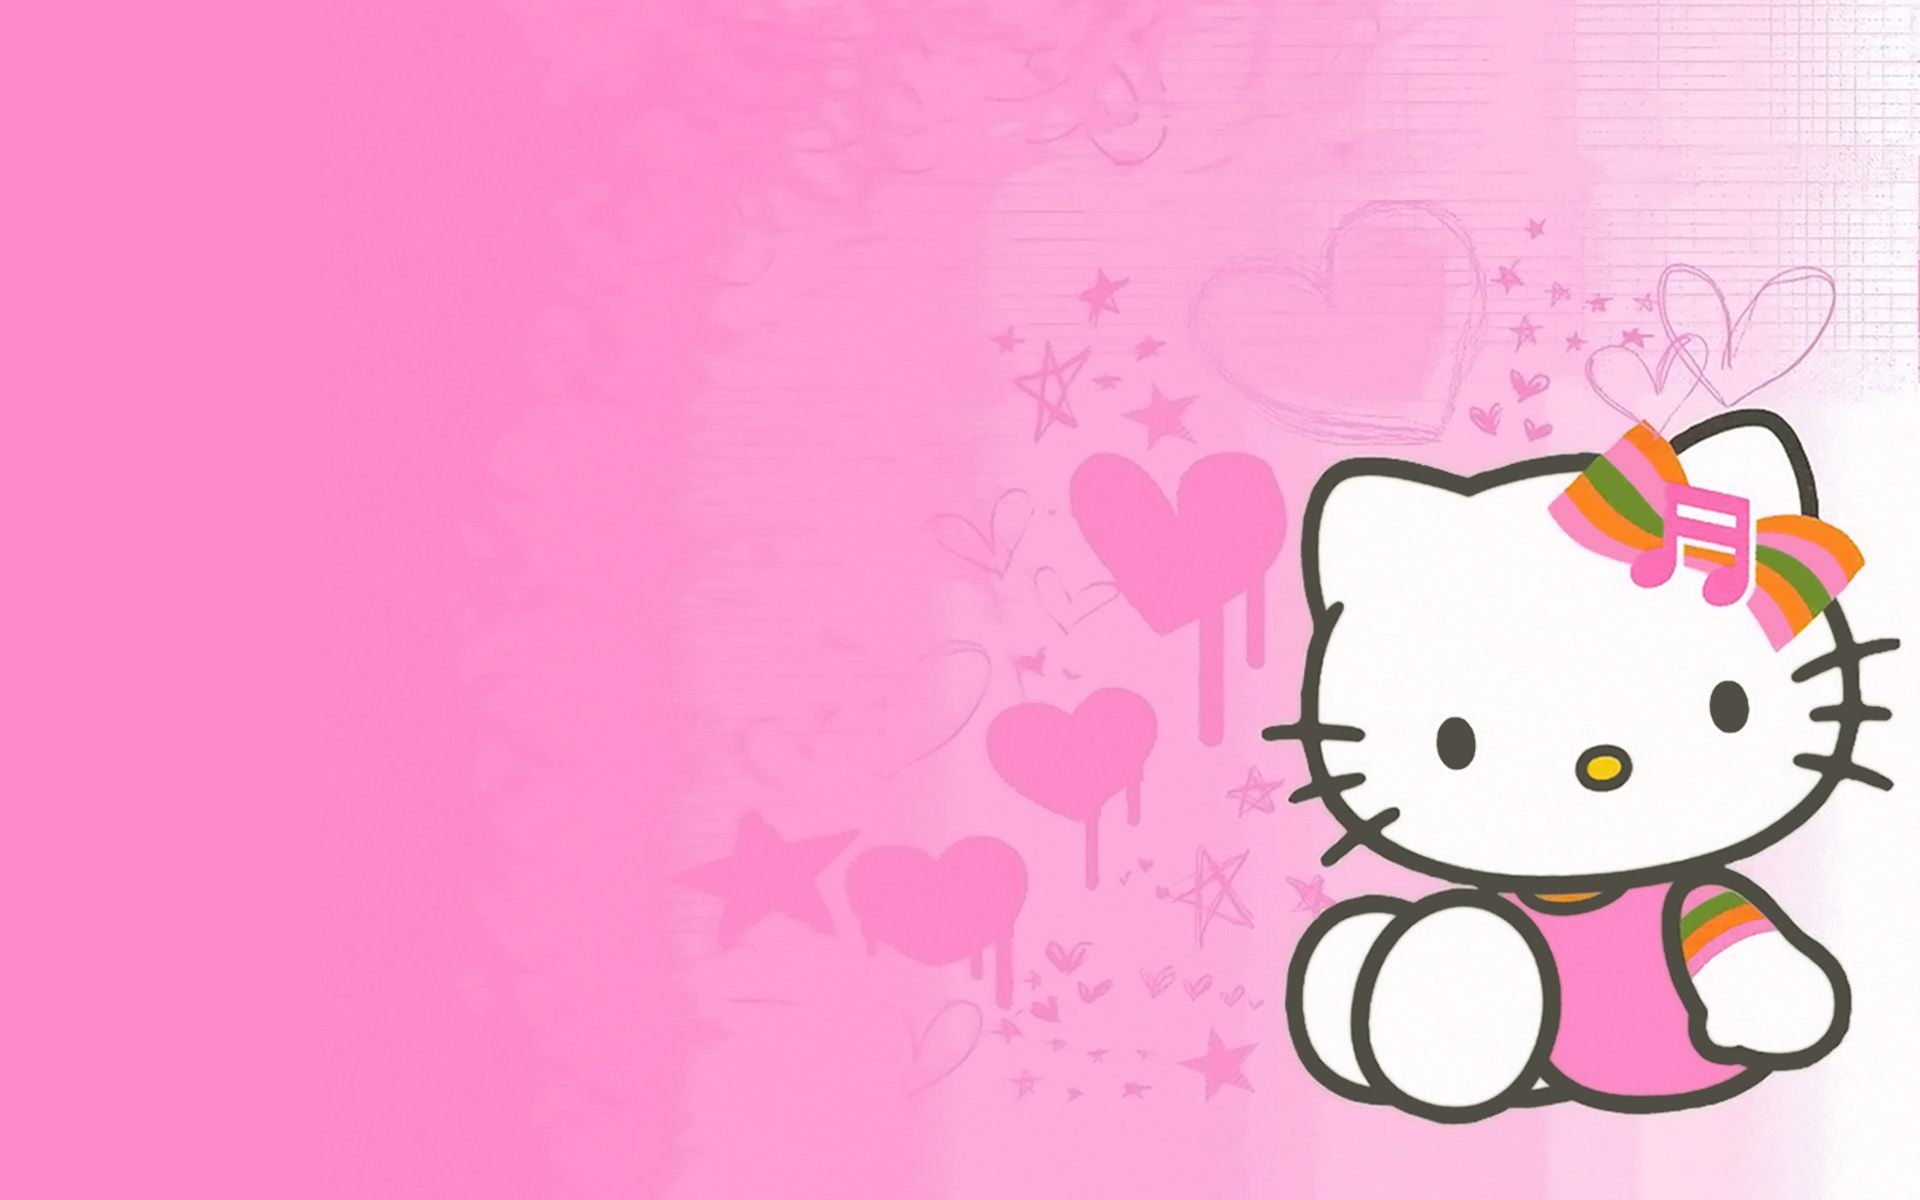 Hello Kitty Wallpapers   Top Hello Kitty Backgrounds 1920x1200